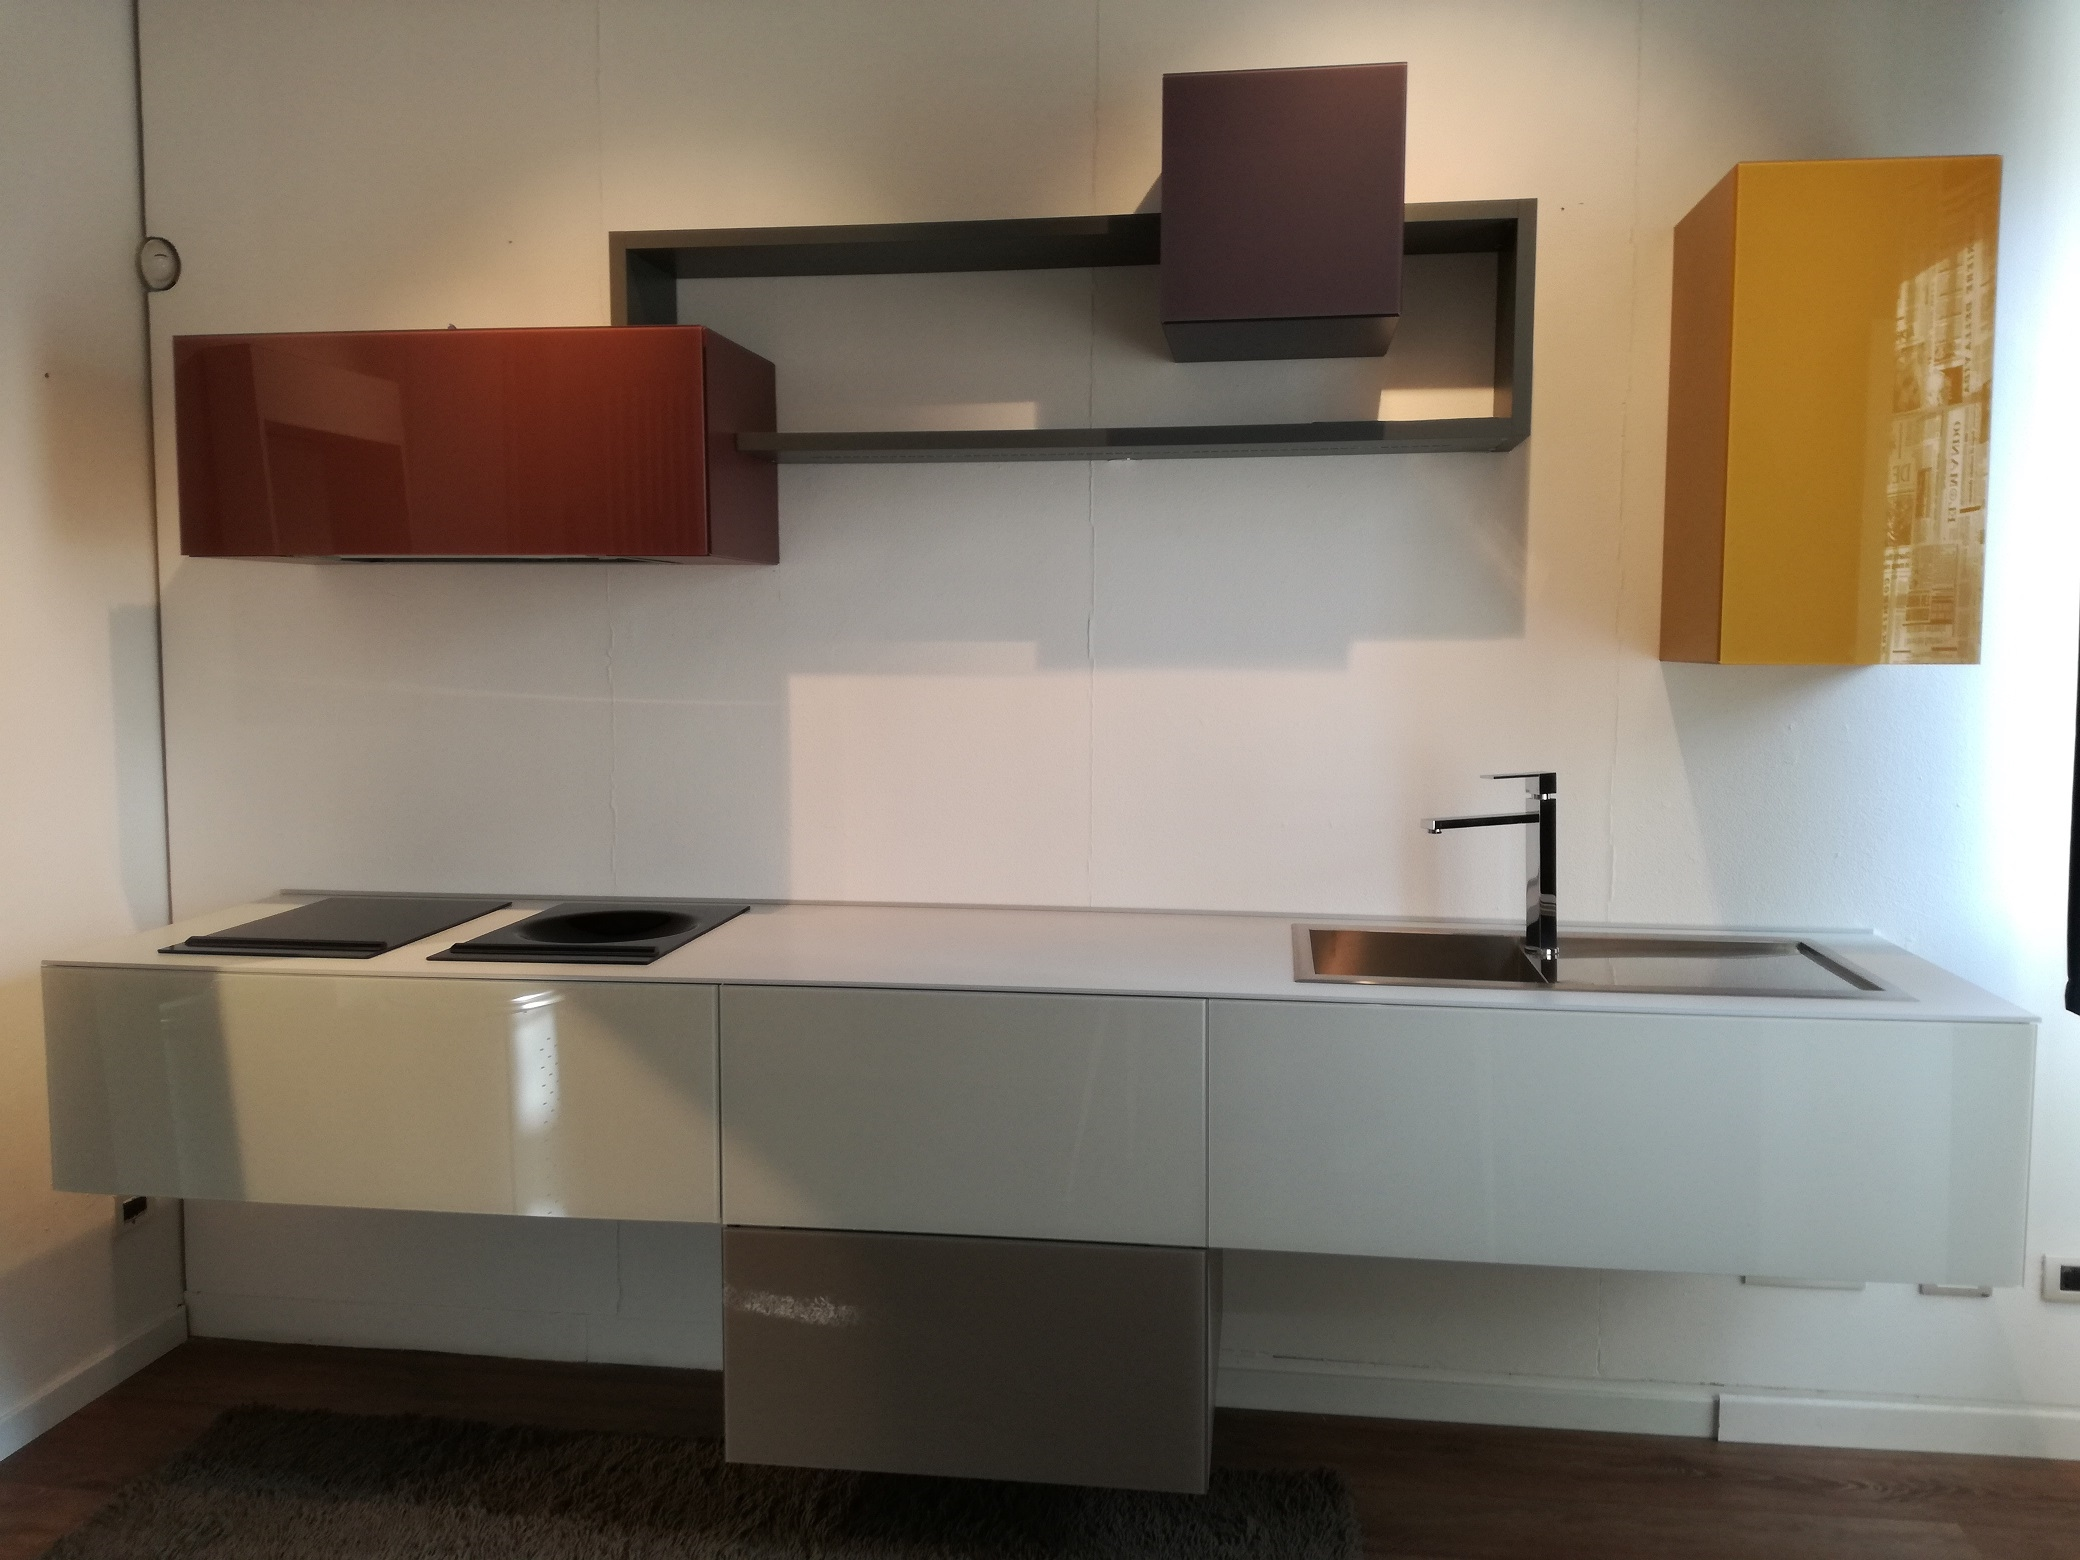 Showroom cucine bologna located in bologna italy this for Bolelli arredamenti